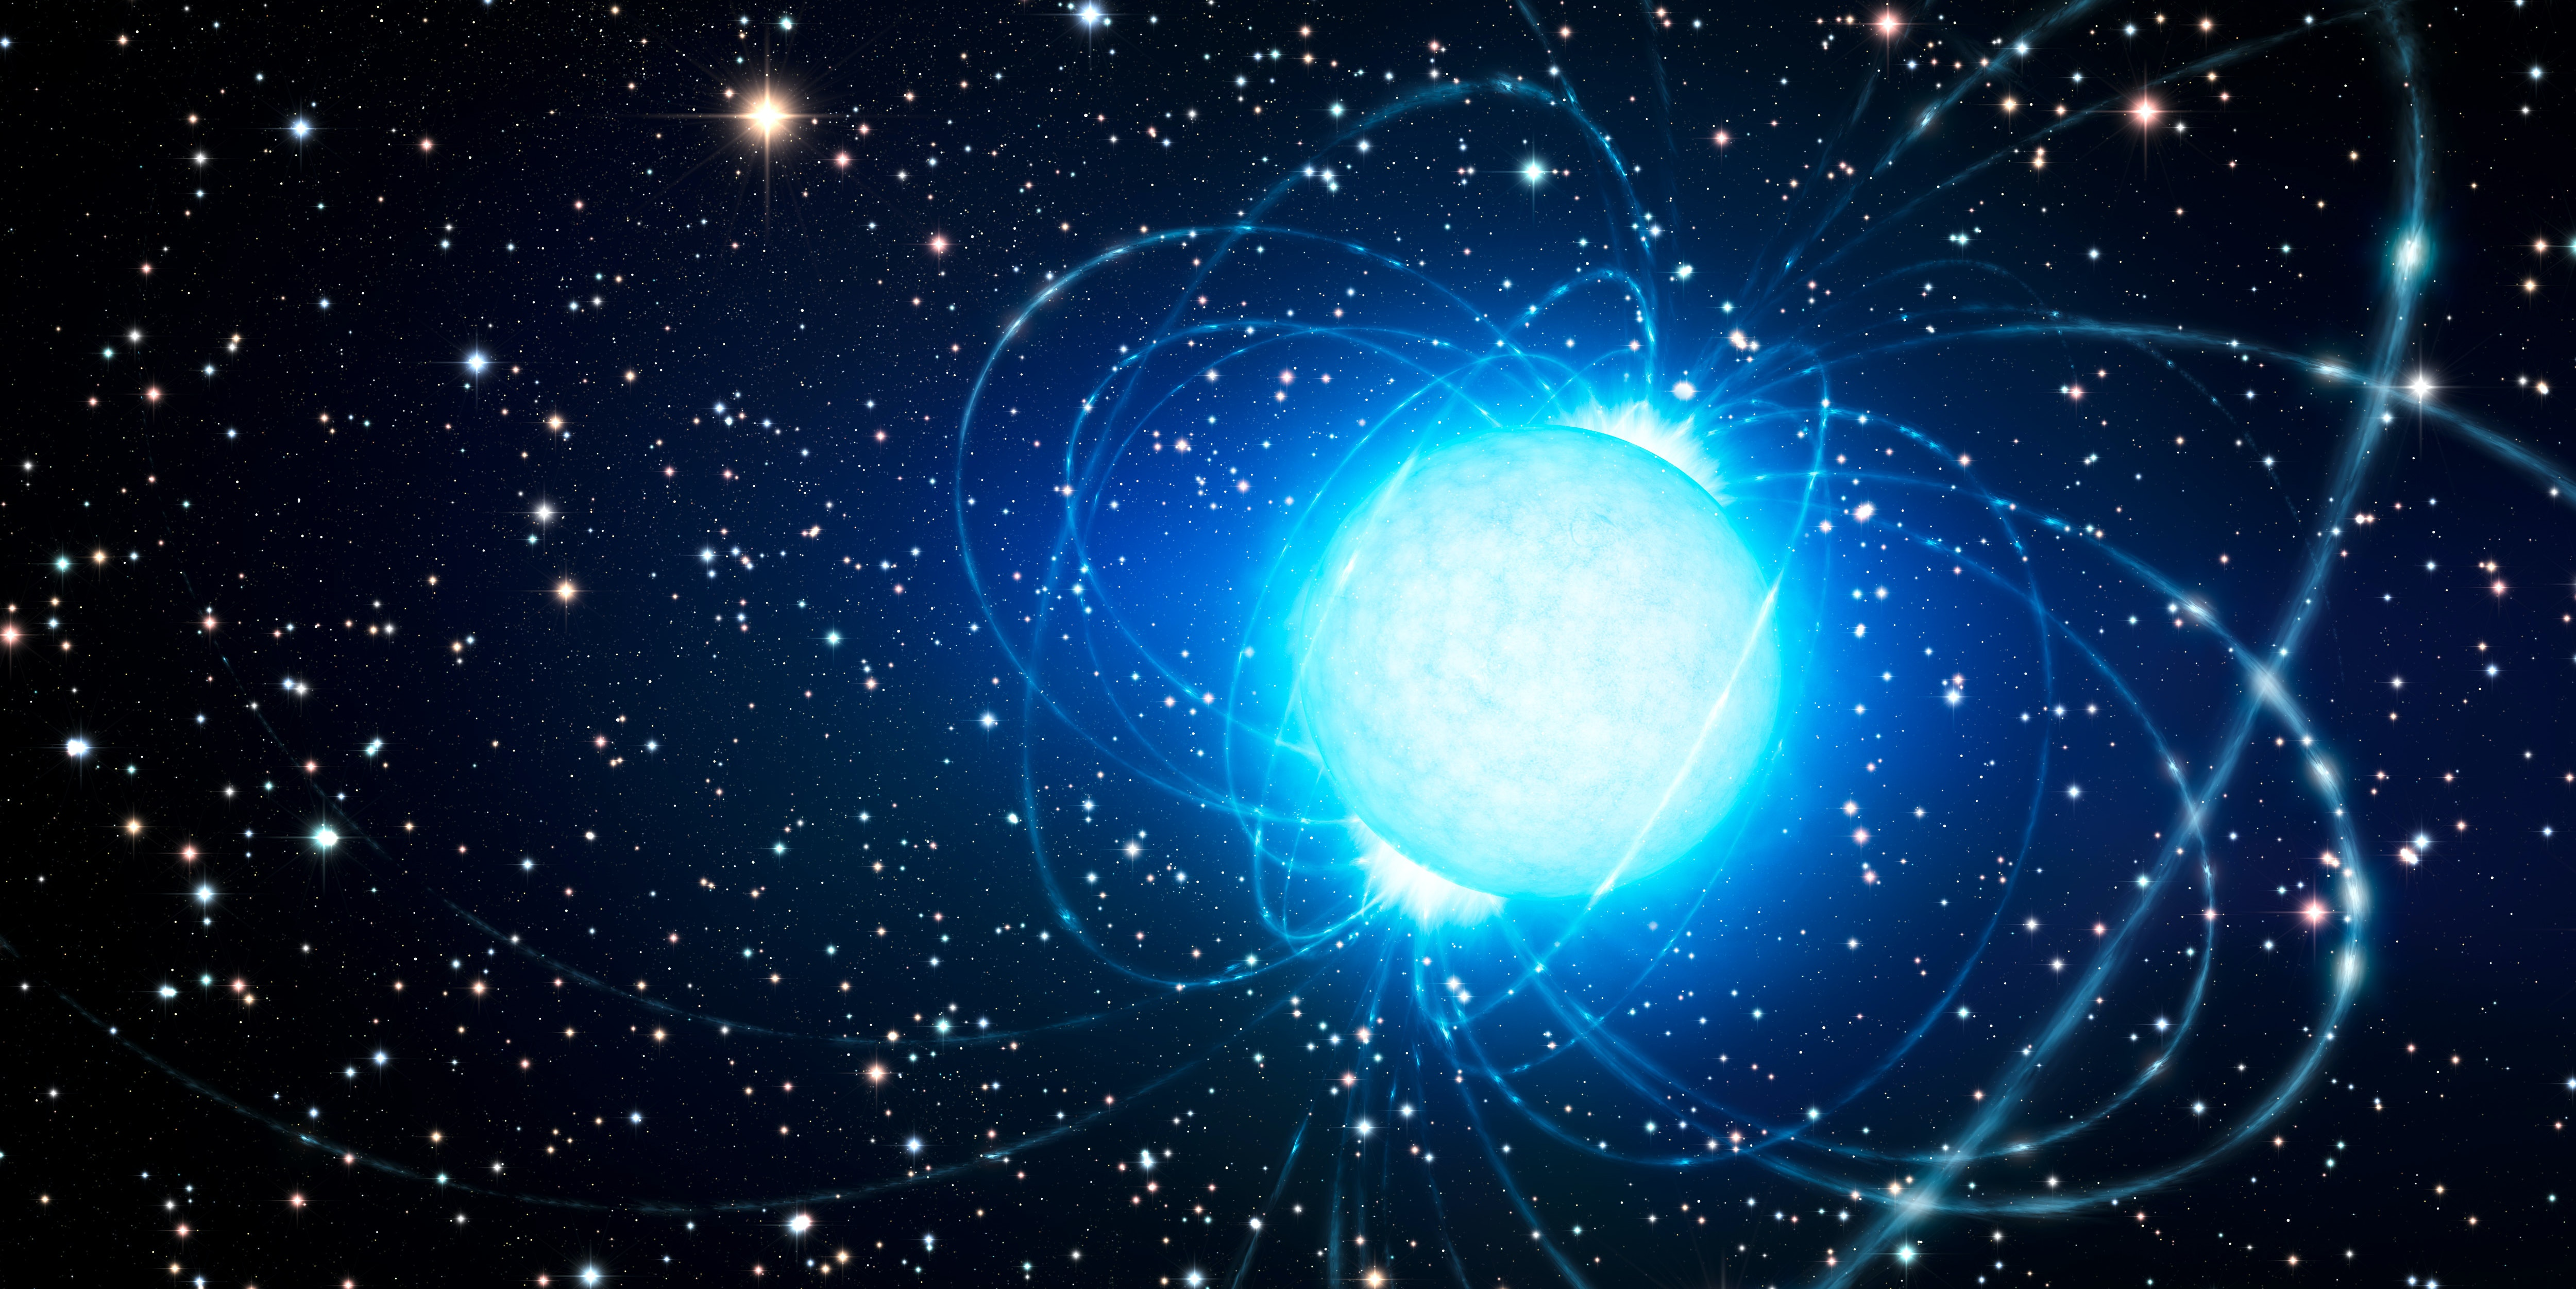 Artist's conception of a powerful magnetar in a star cluster.